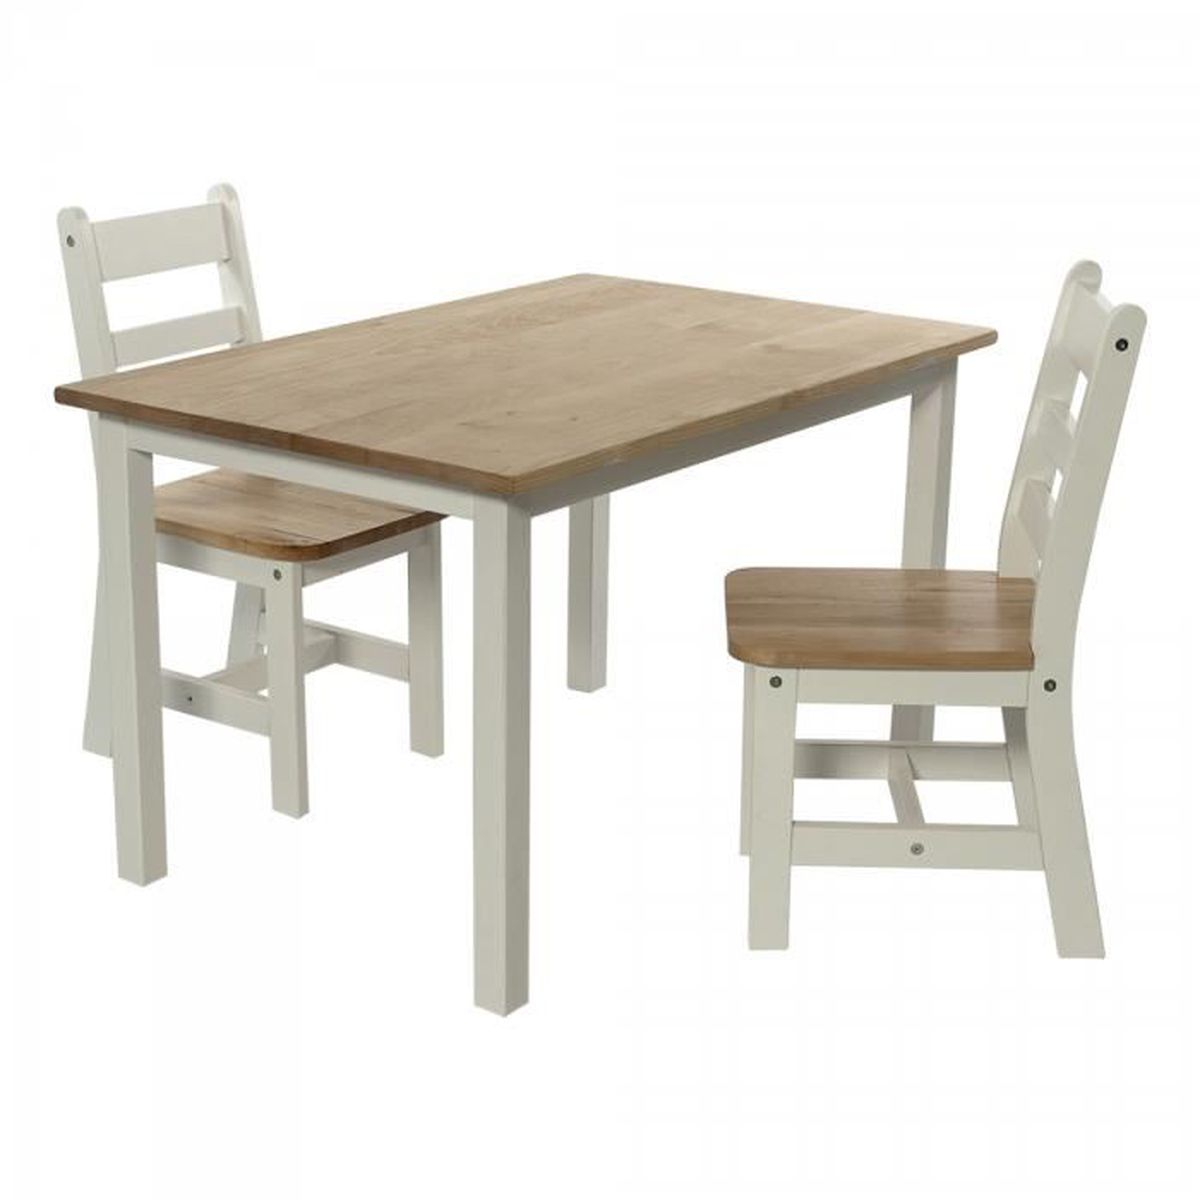 Ensemble table et chaises enfant conceptions de maison for Ensemble table et chaise design